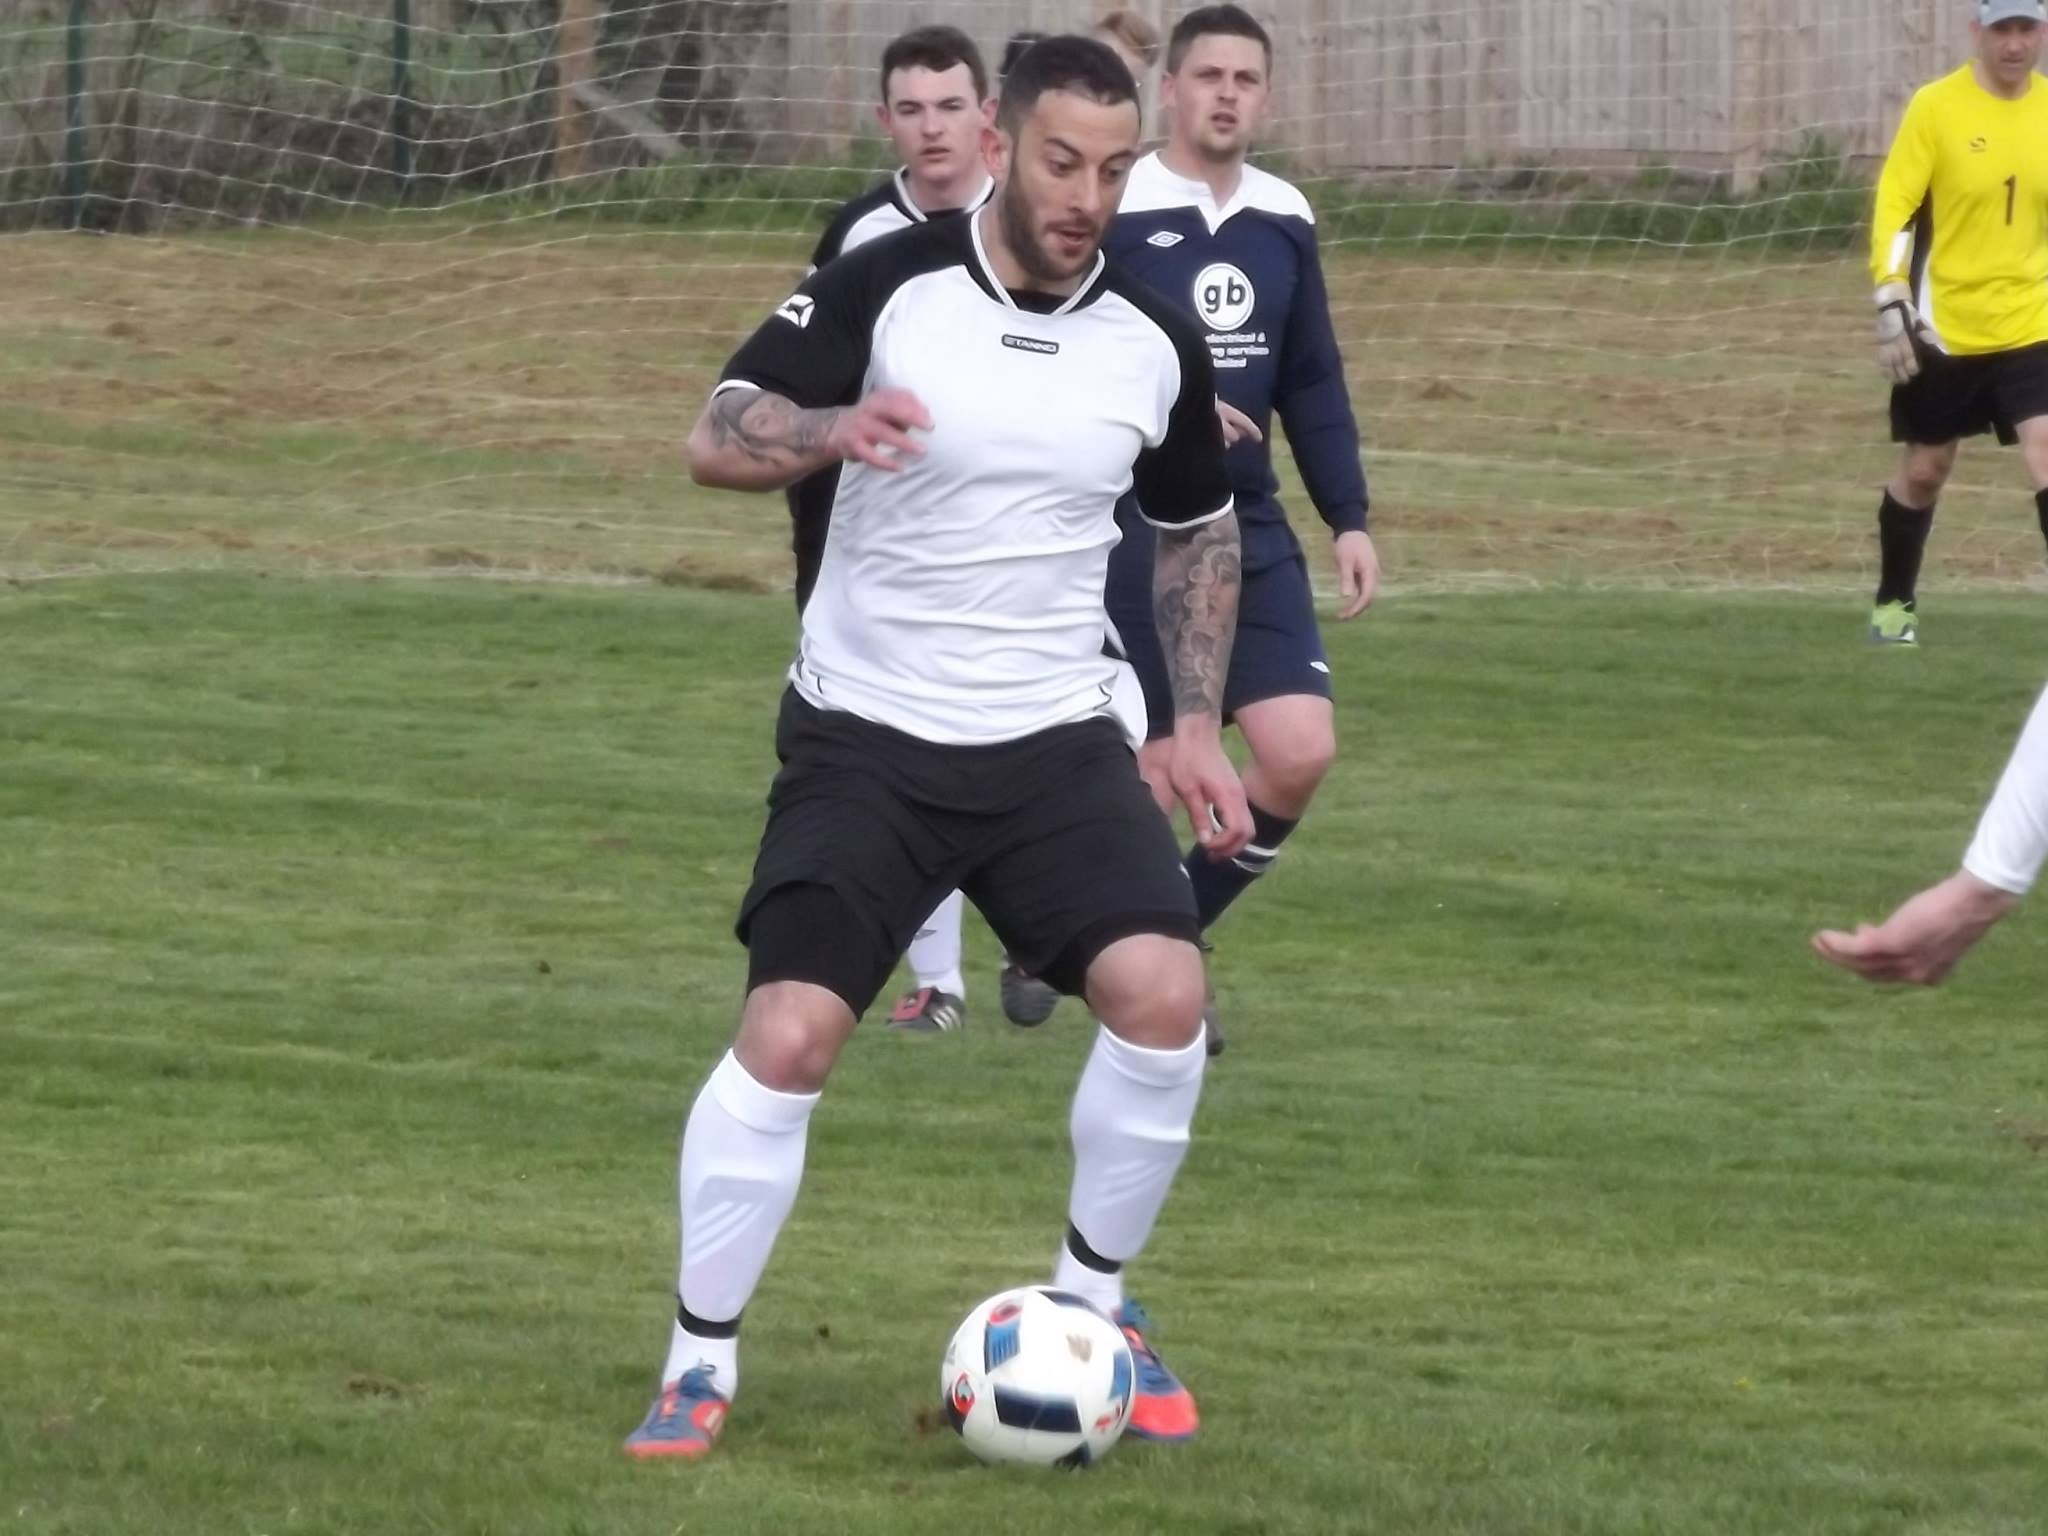 Stuart Fleetwood playing for Rosey Athletic against Stagecoach. Photo: Darren Coates